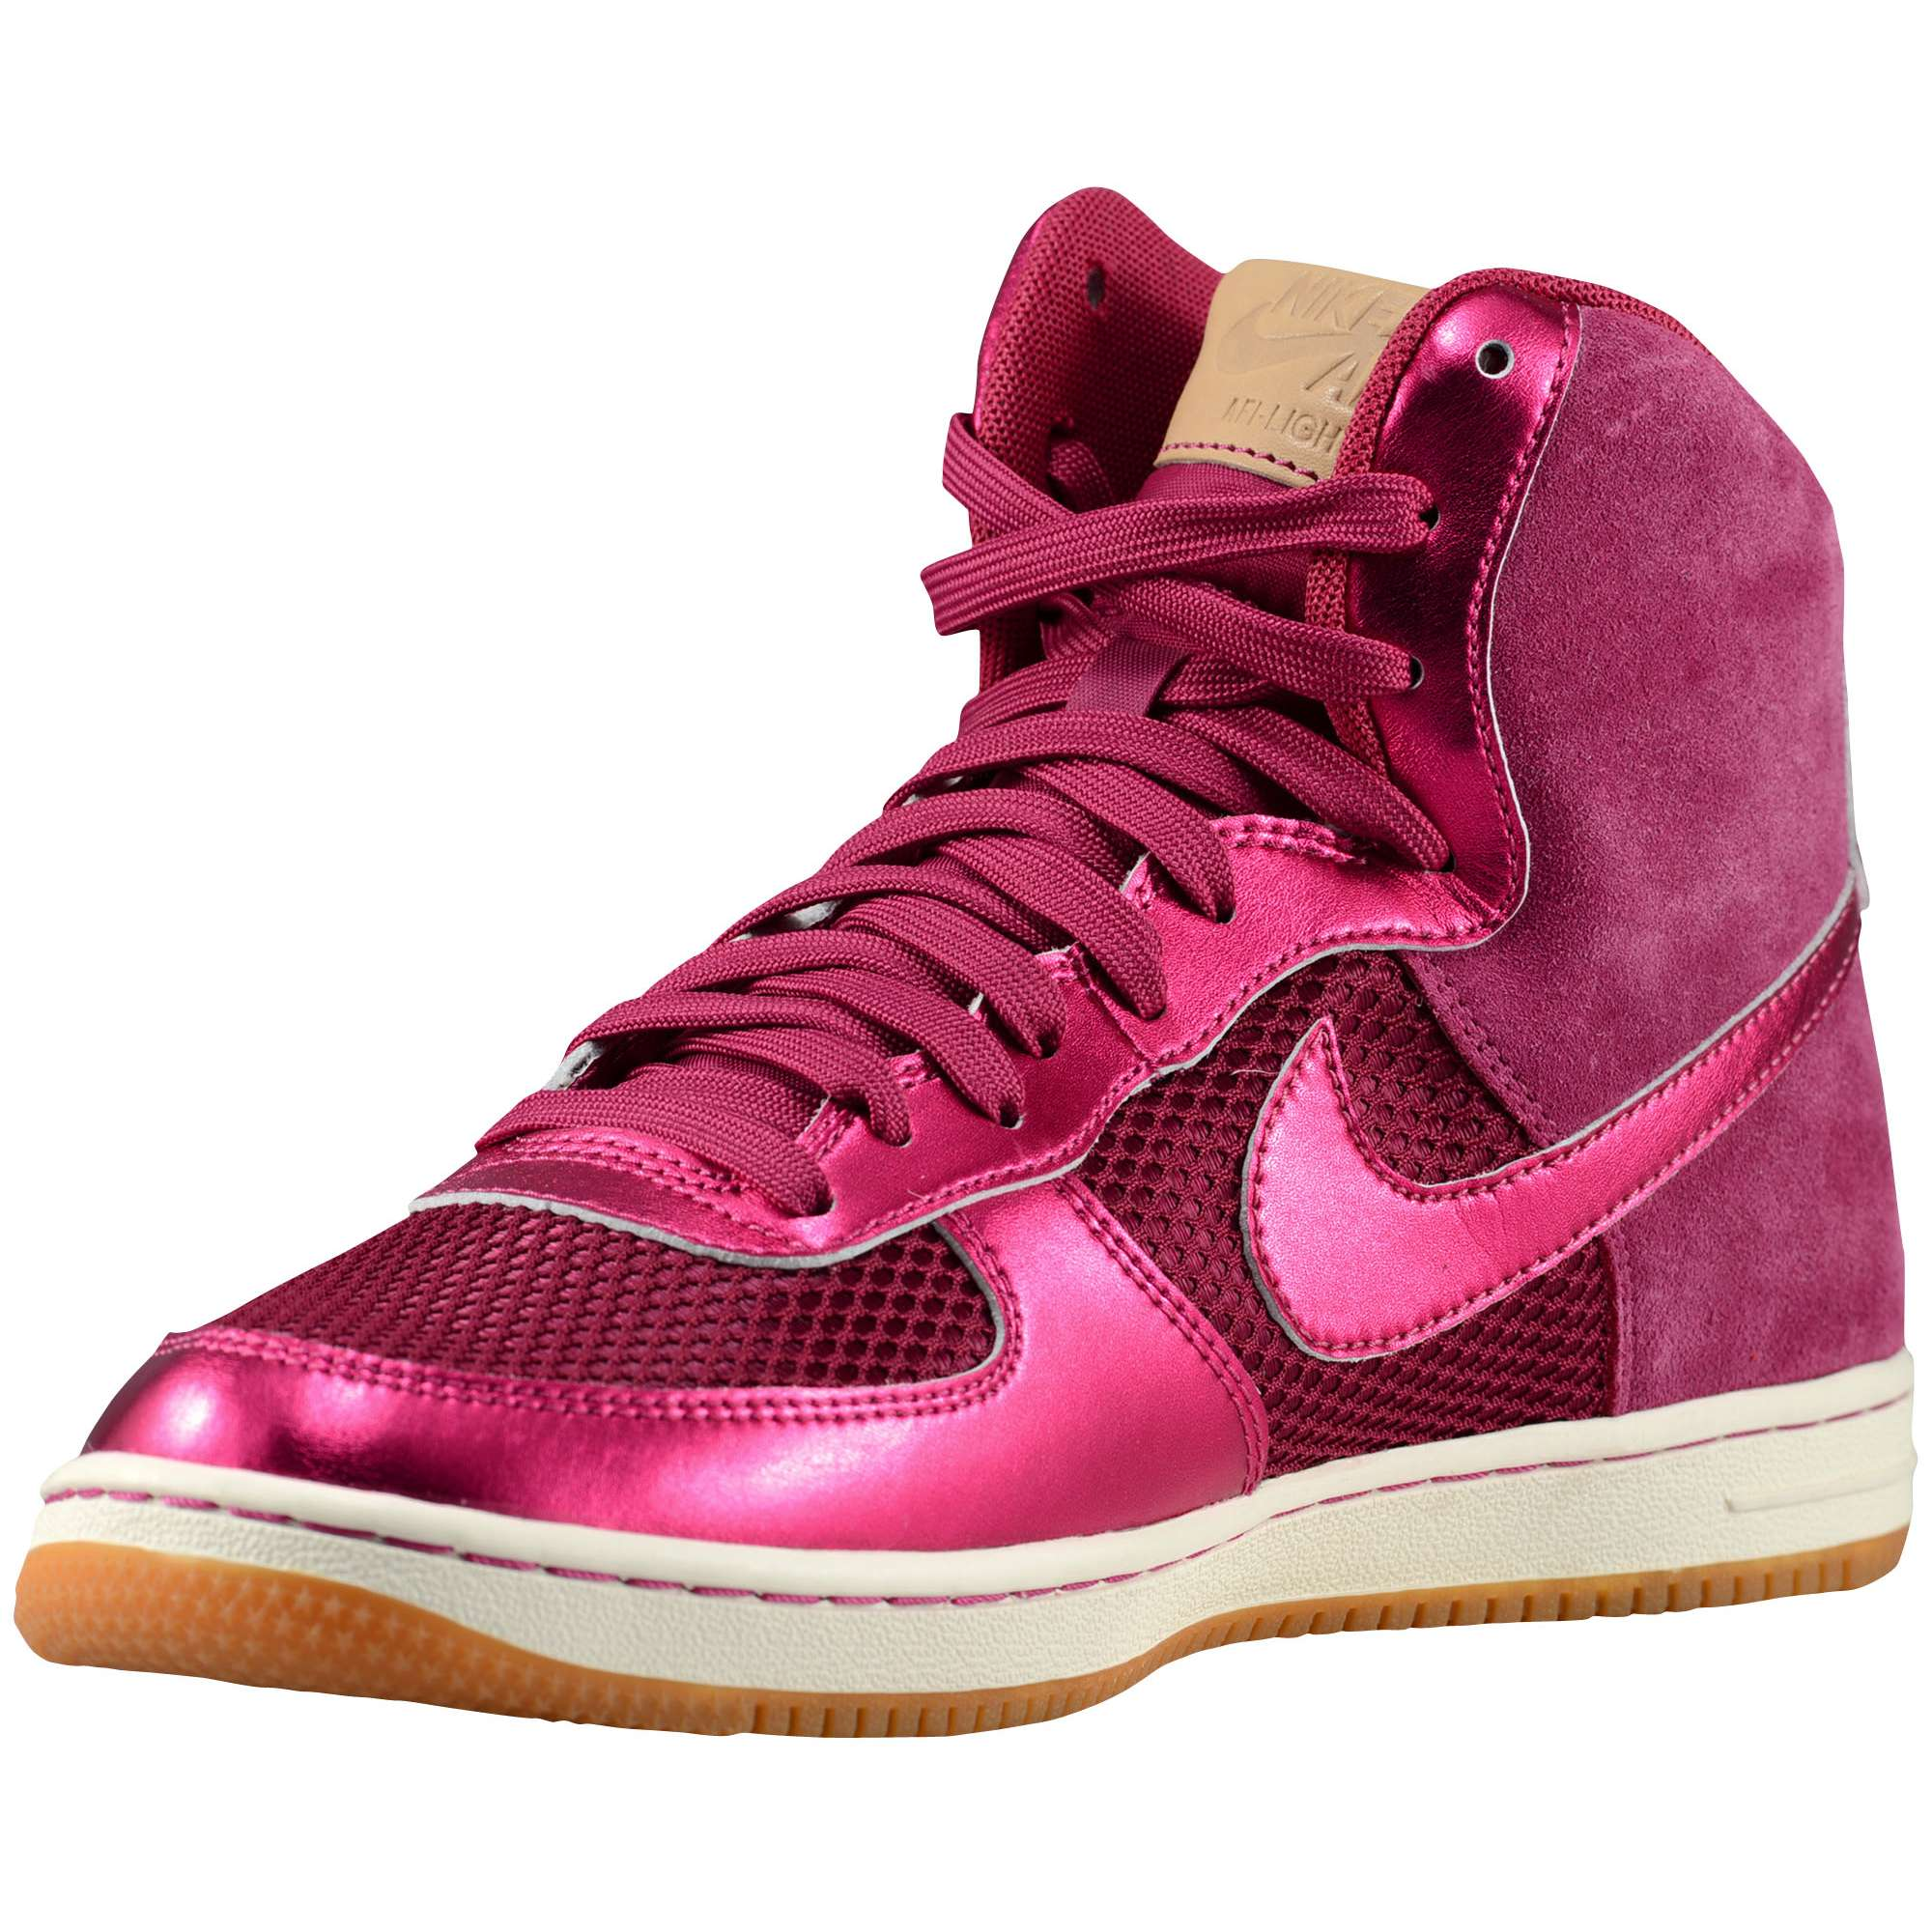 Nike Air Force 1 Light High Womens - Rave Pink 5e16708447